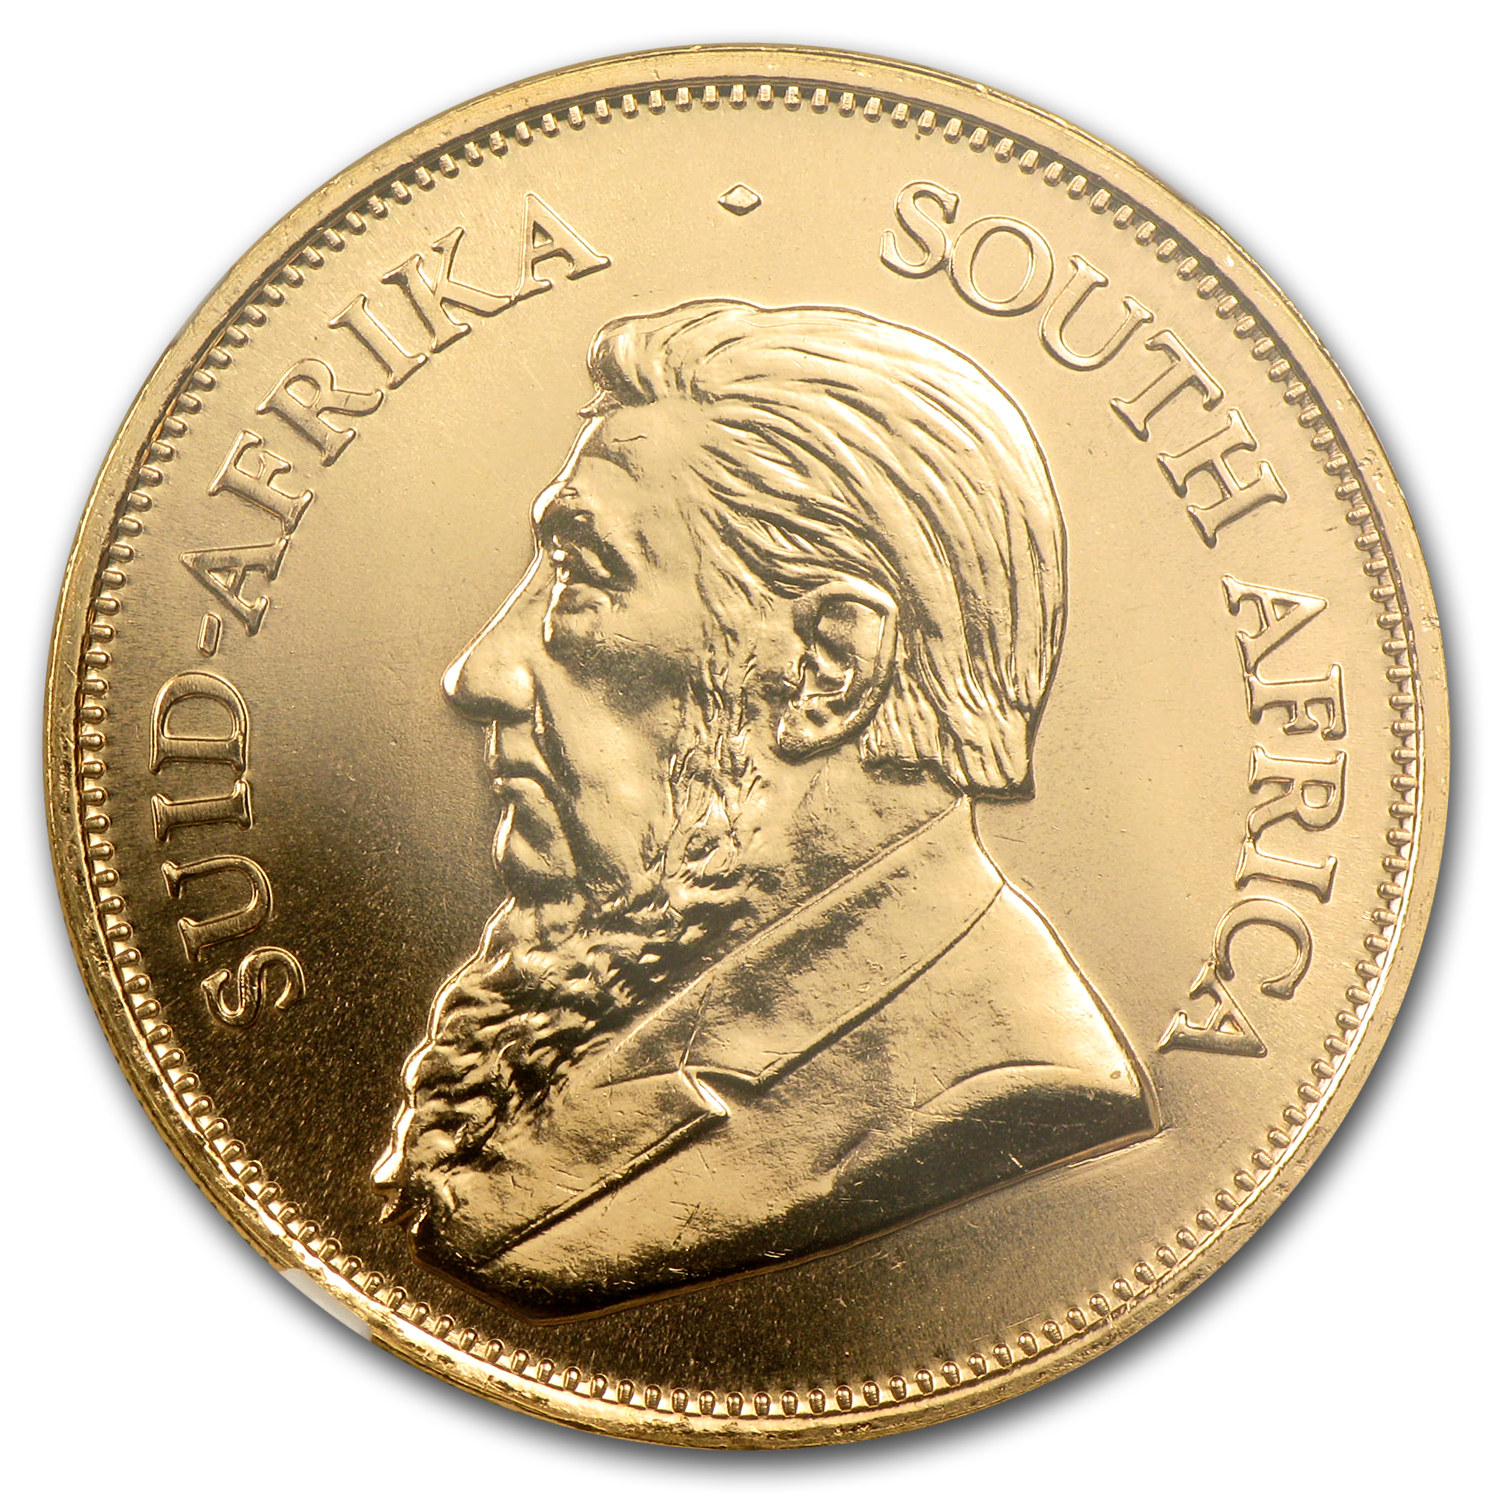 2002 1 oz Gold South African Krugerrand MS-65 NGC